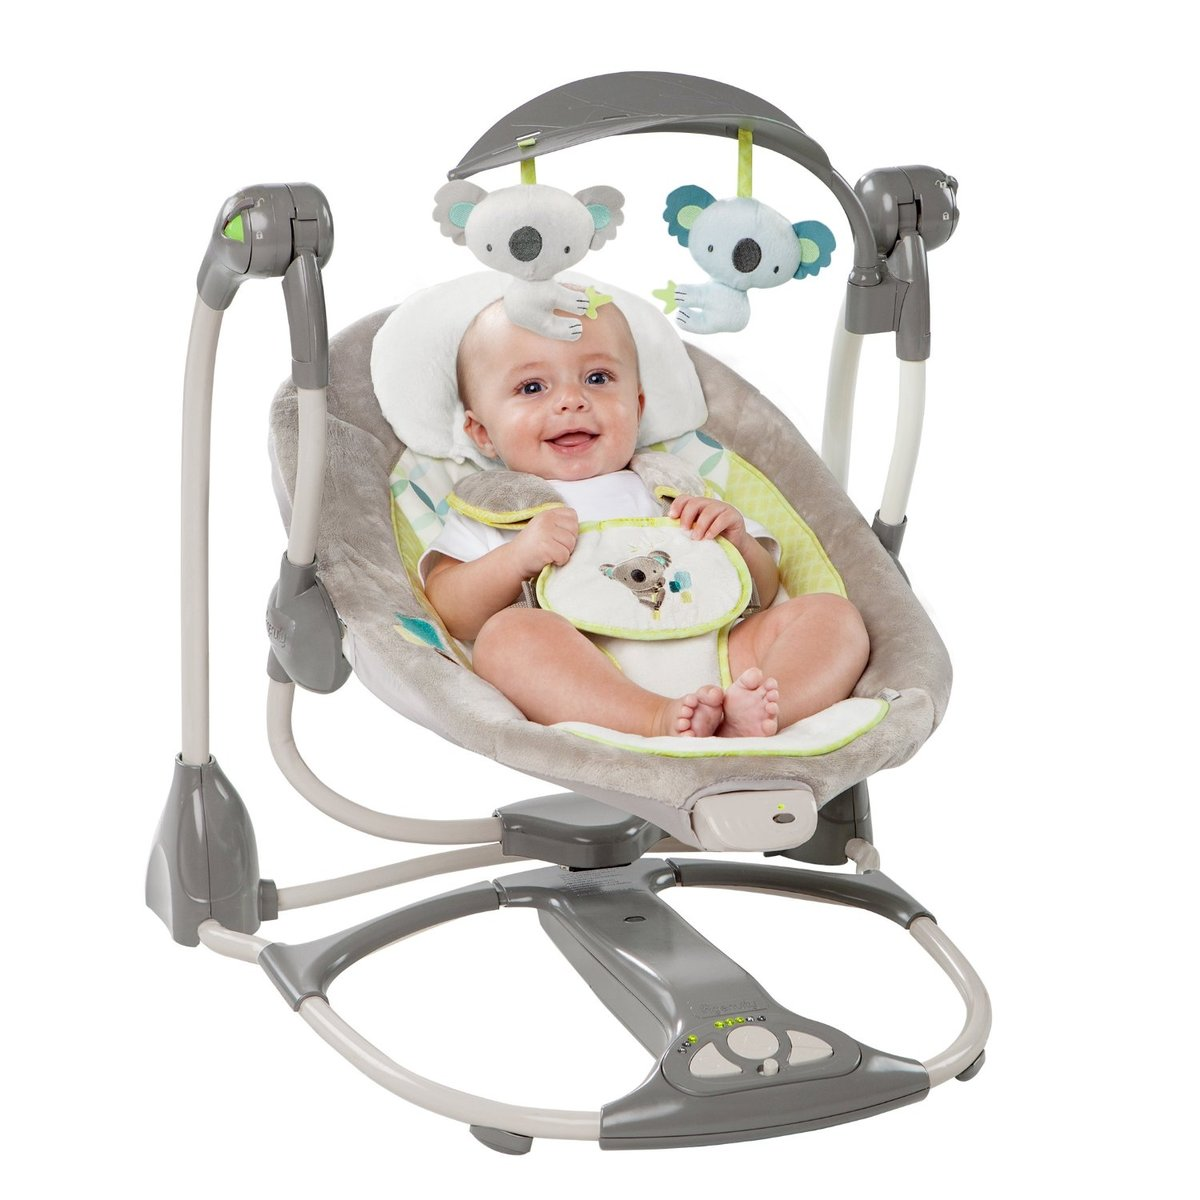 Electric Comfort Rocking Chair Baby Rocking Bed Multi-functional Artifact Intelligent Reclining Chair Cradle Bed